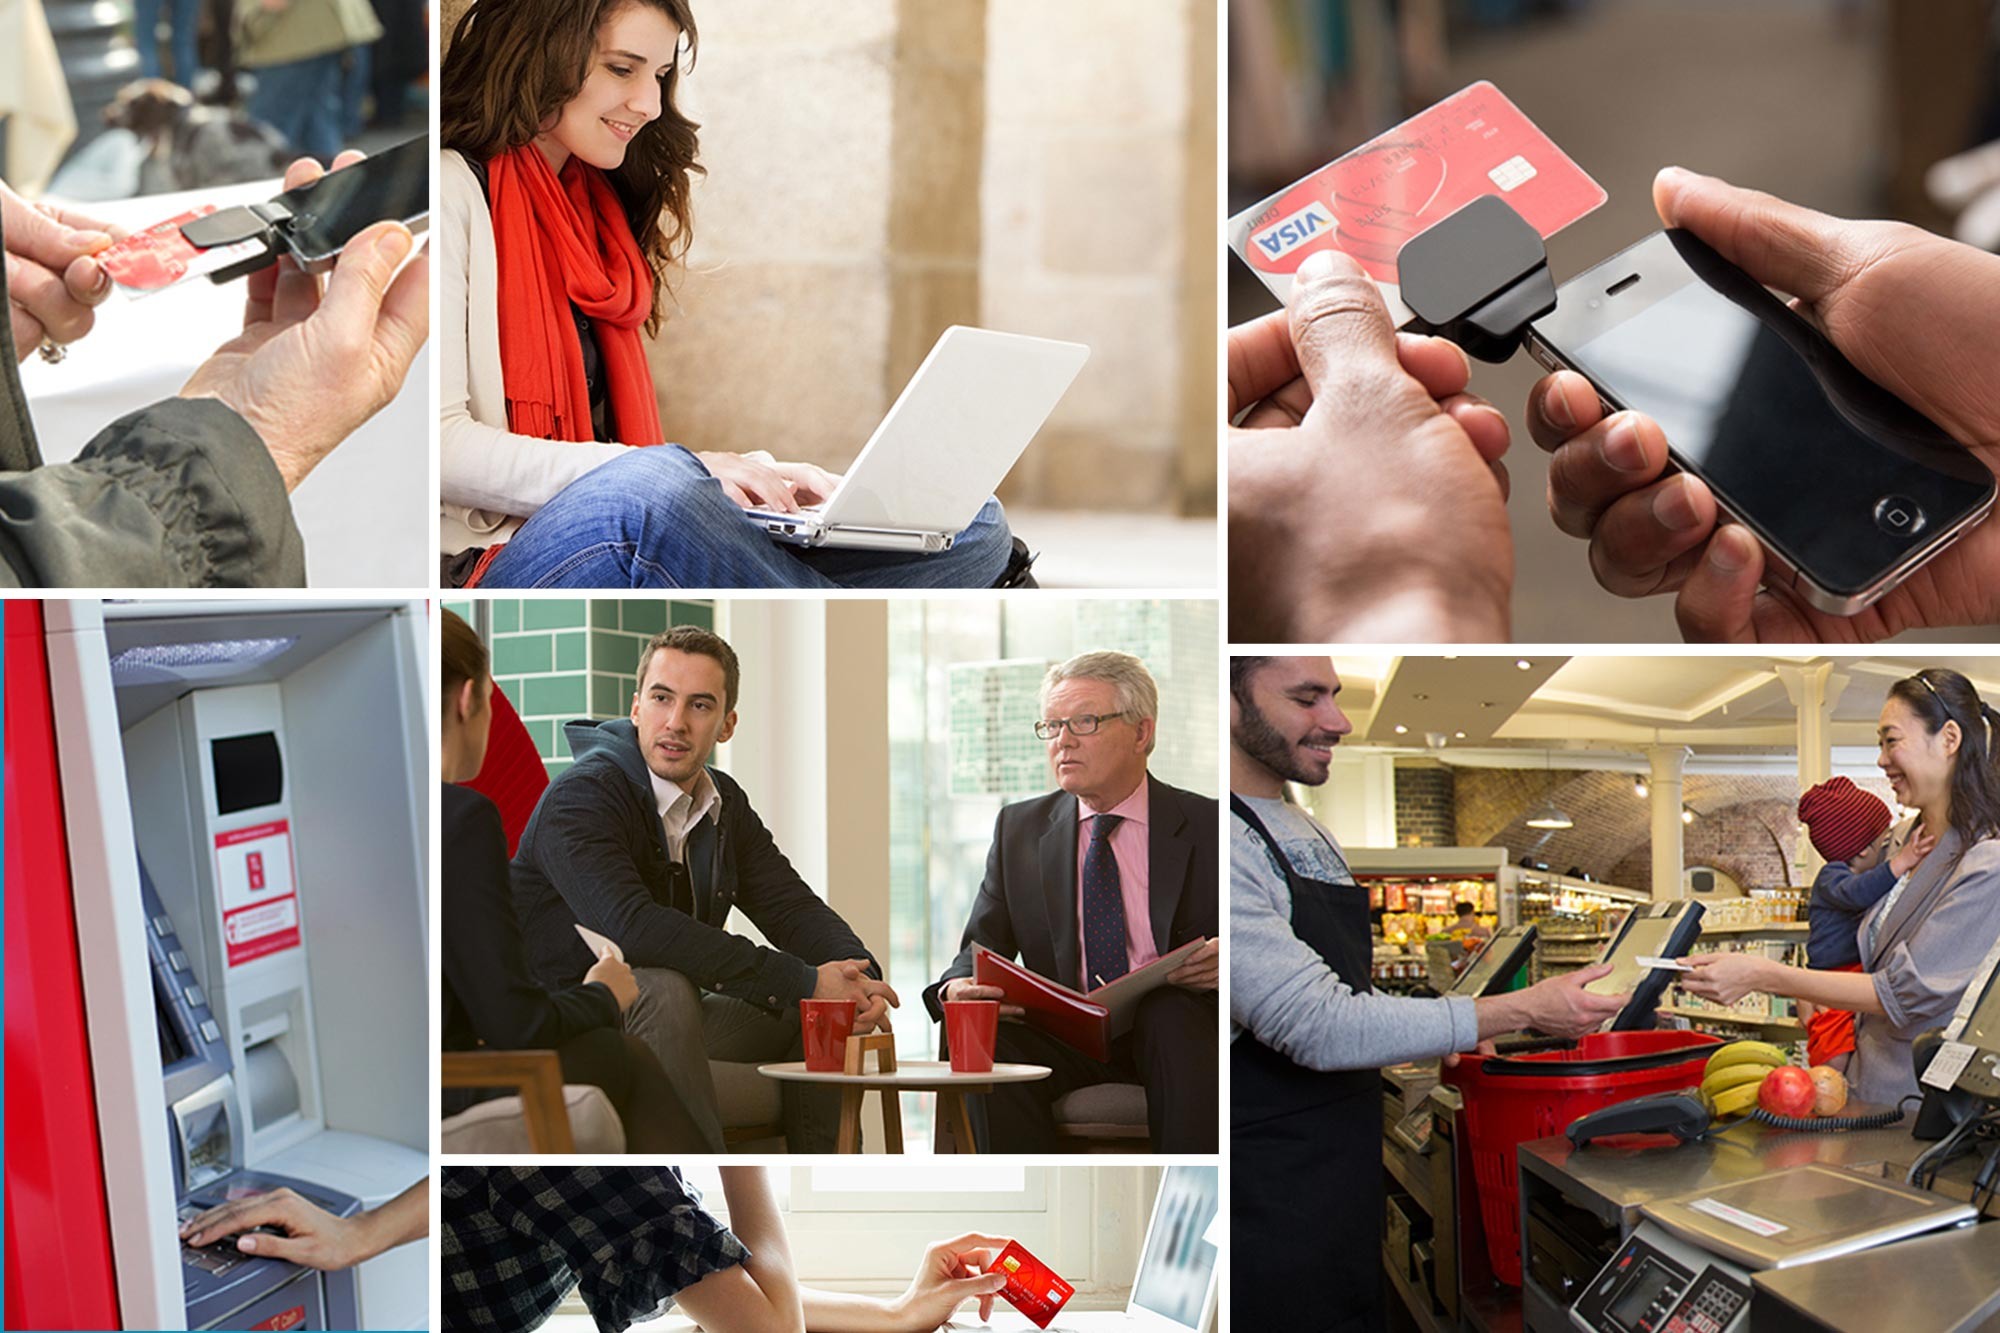 Collection of Worldpay Images